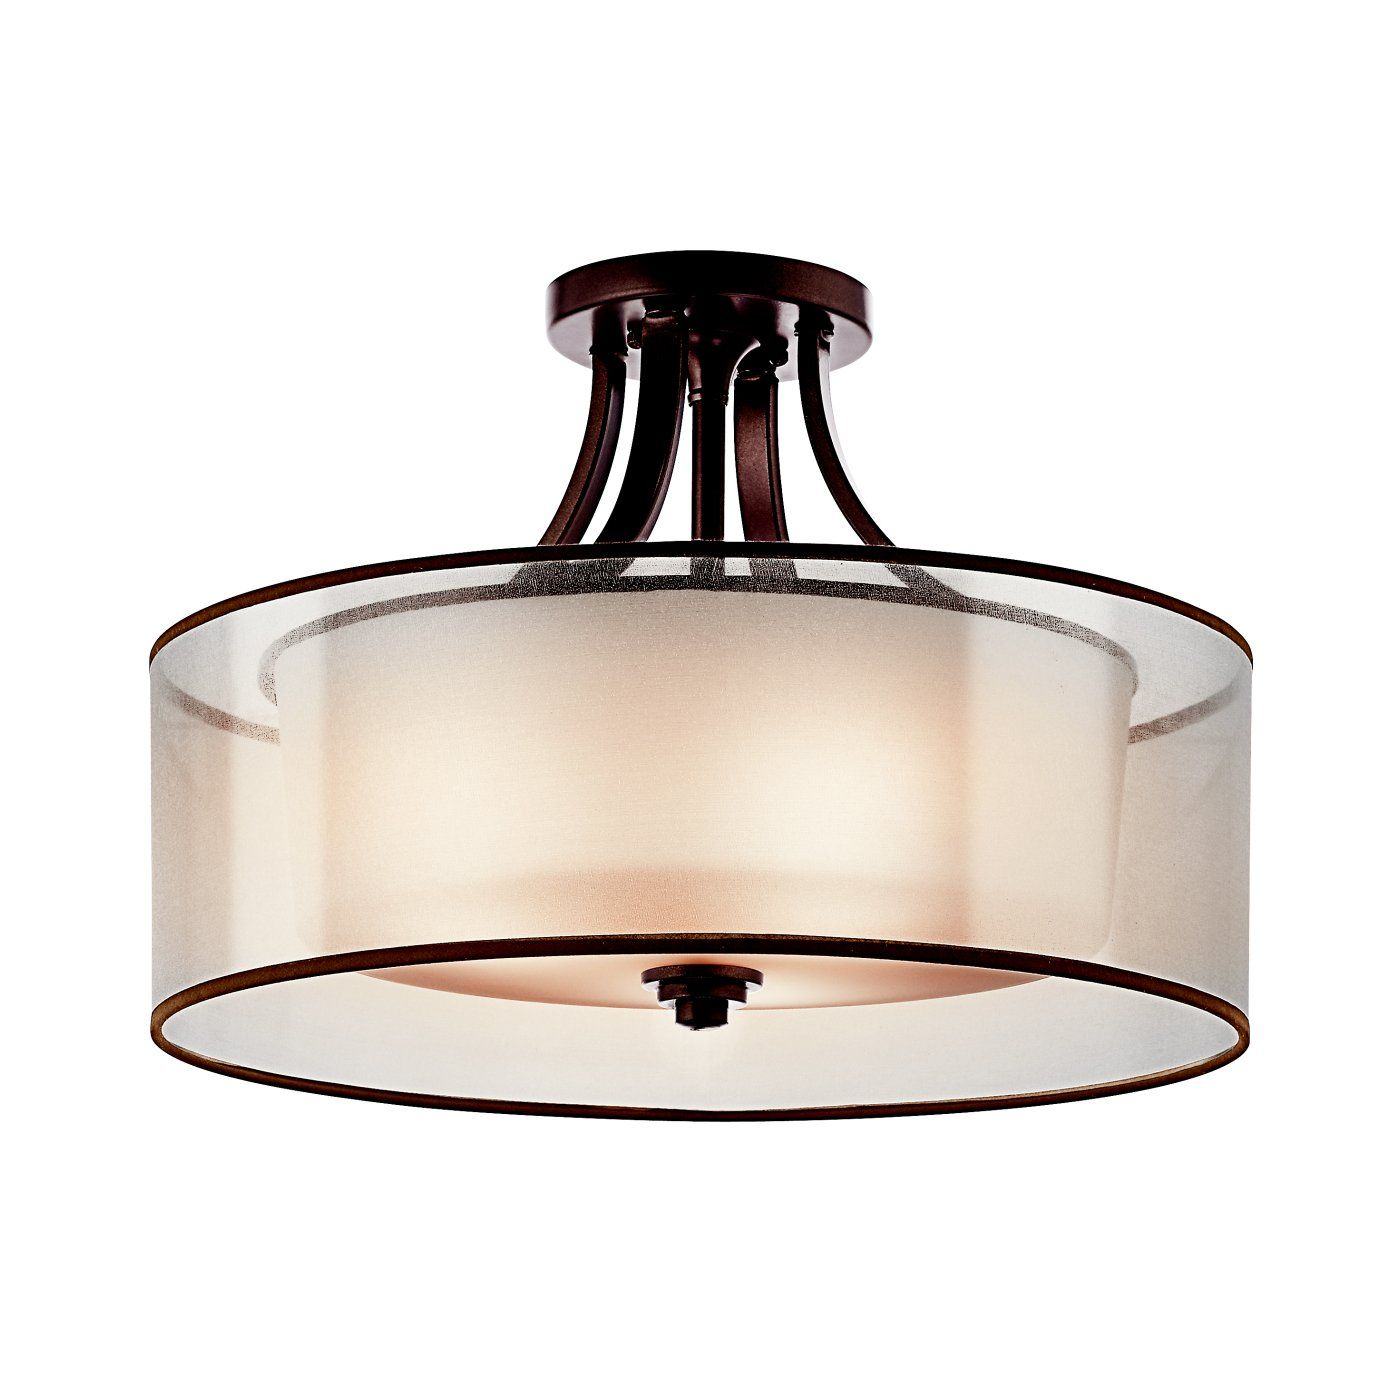 Kichler Lighting 42387 3 Light Lacey Large Semi Flush Ceiling Light Lighting Universe Eastham Project In 2019 Semi Flush Ceiling Lights Flush Mount Ligh